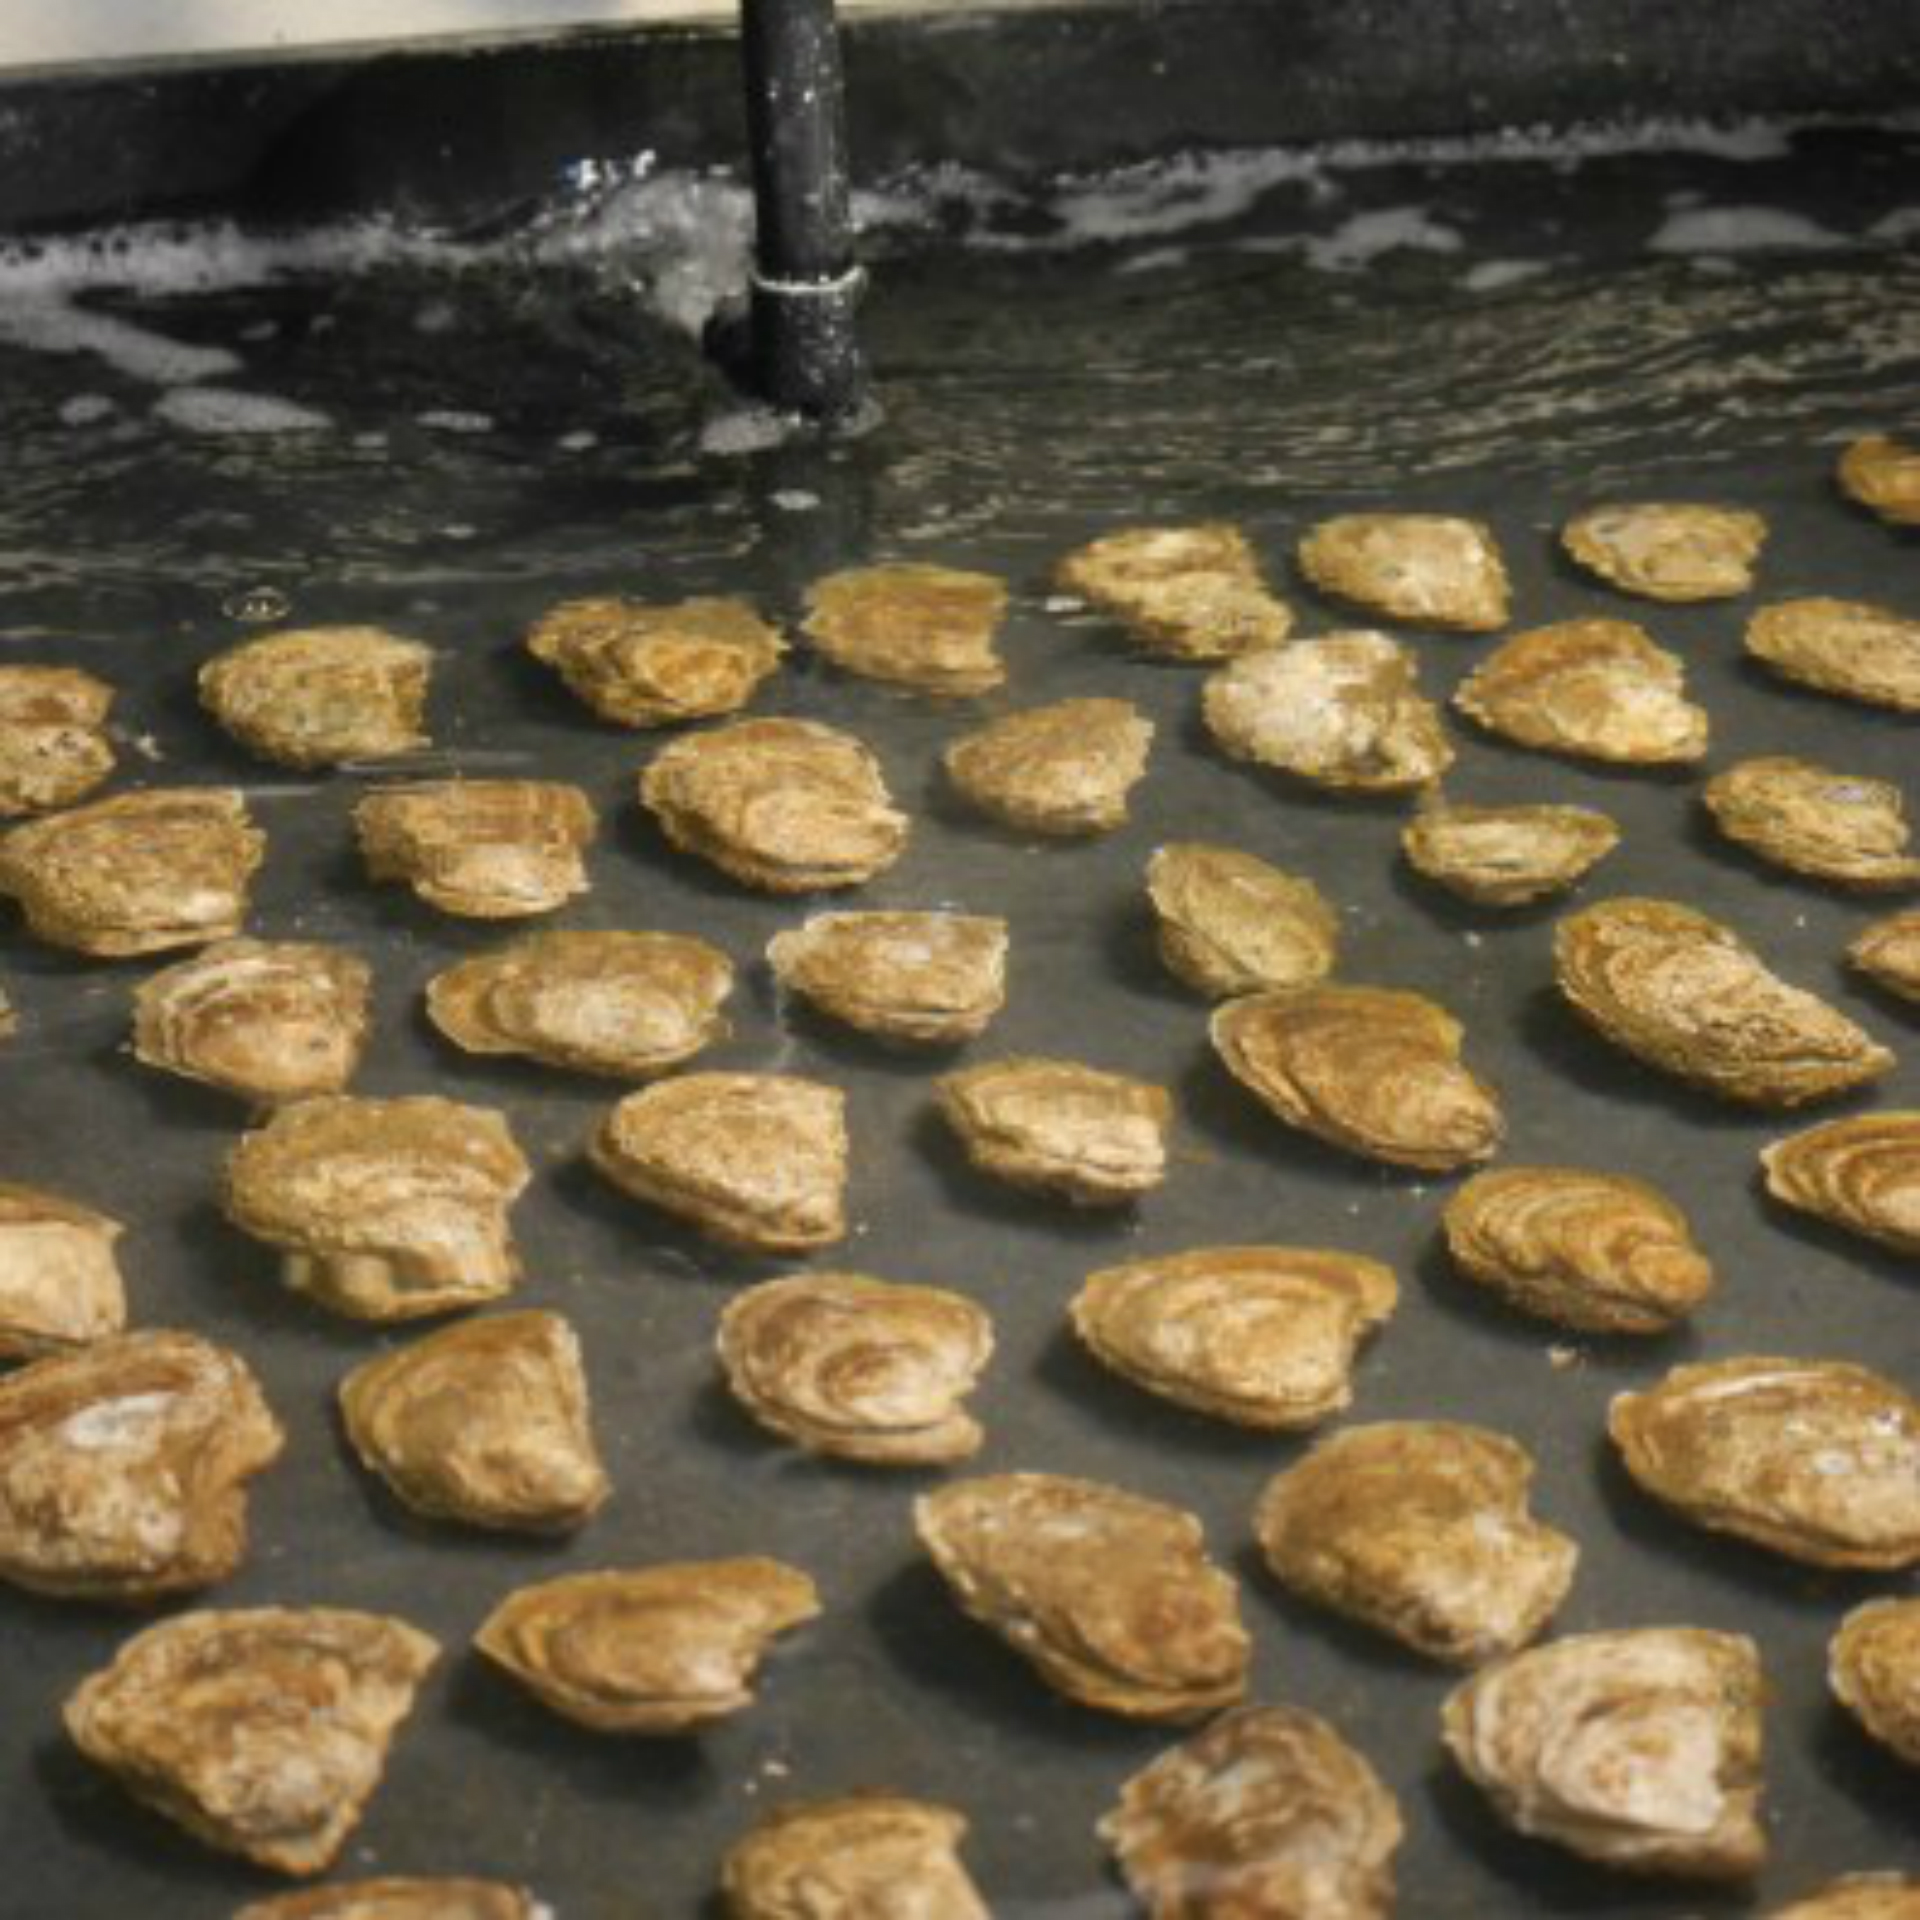 Oysters from the bay waiting to spawn.